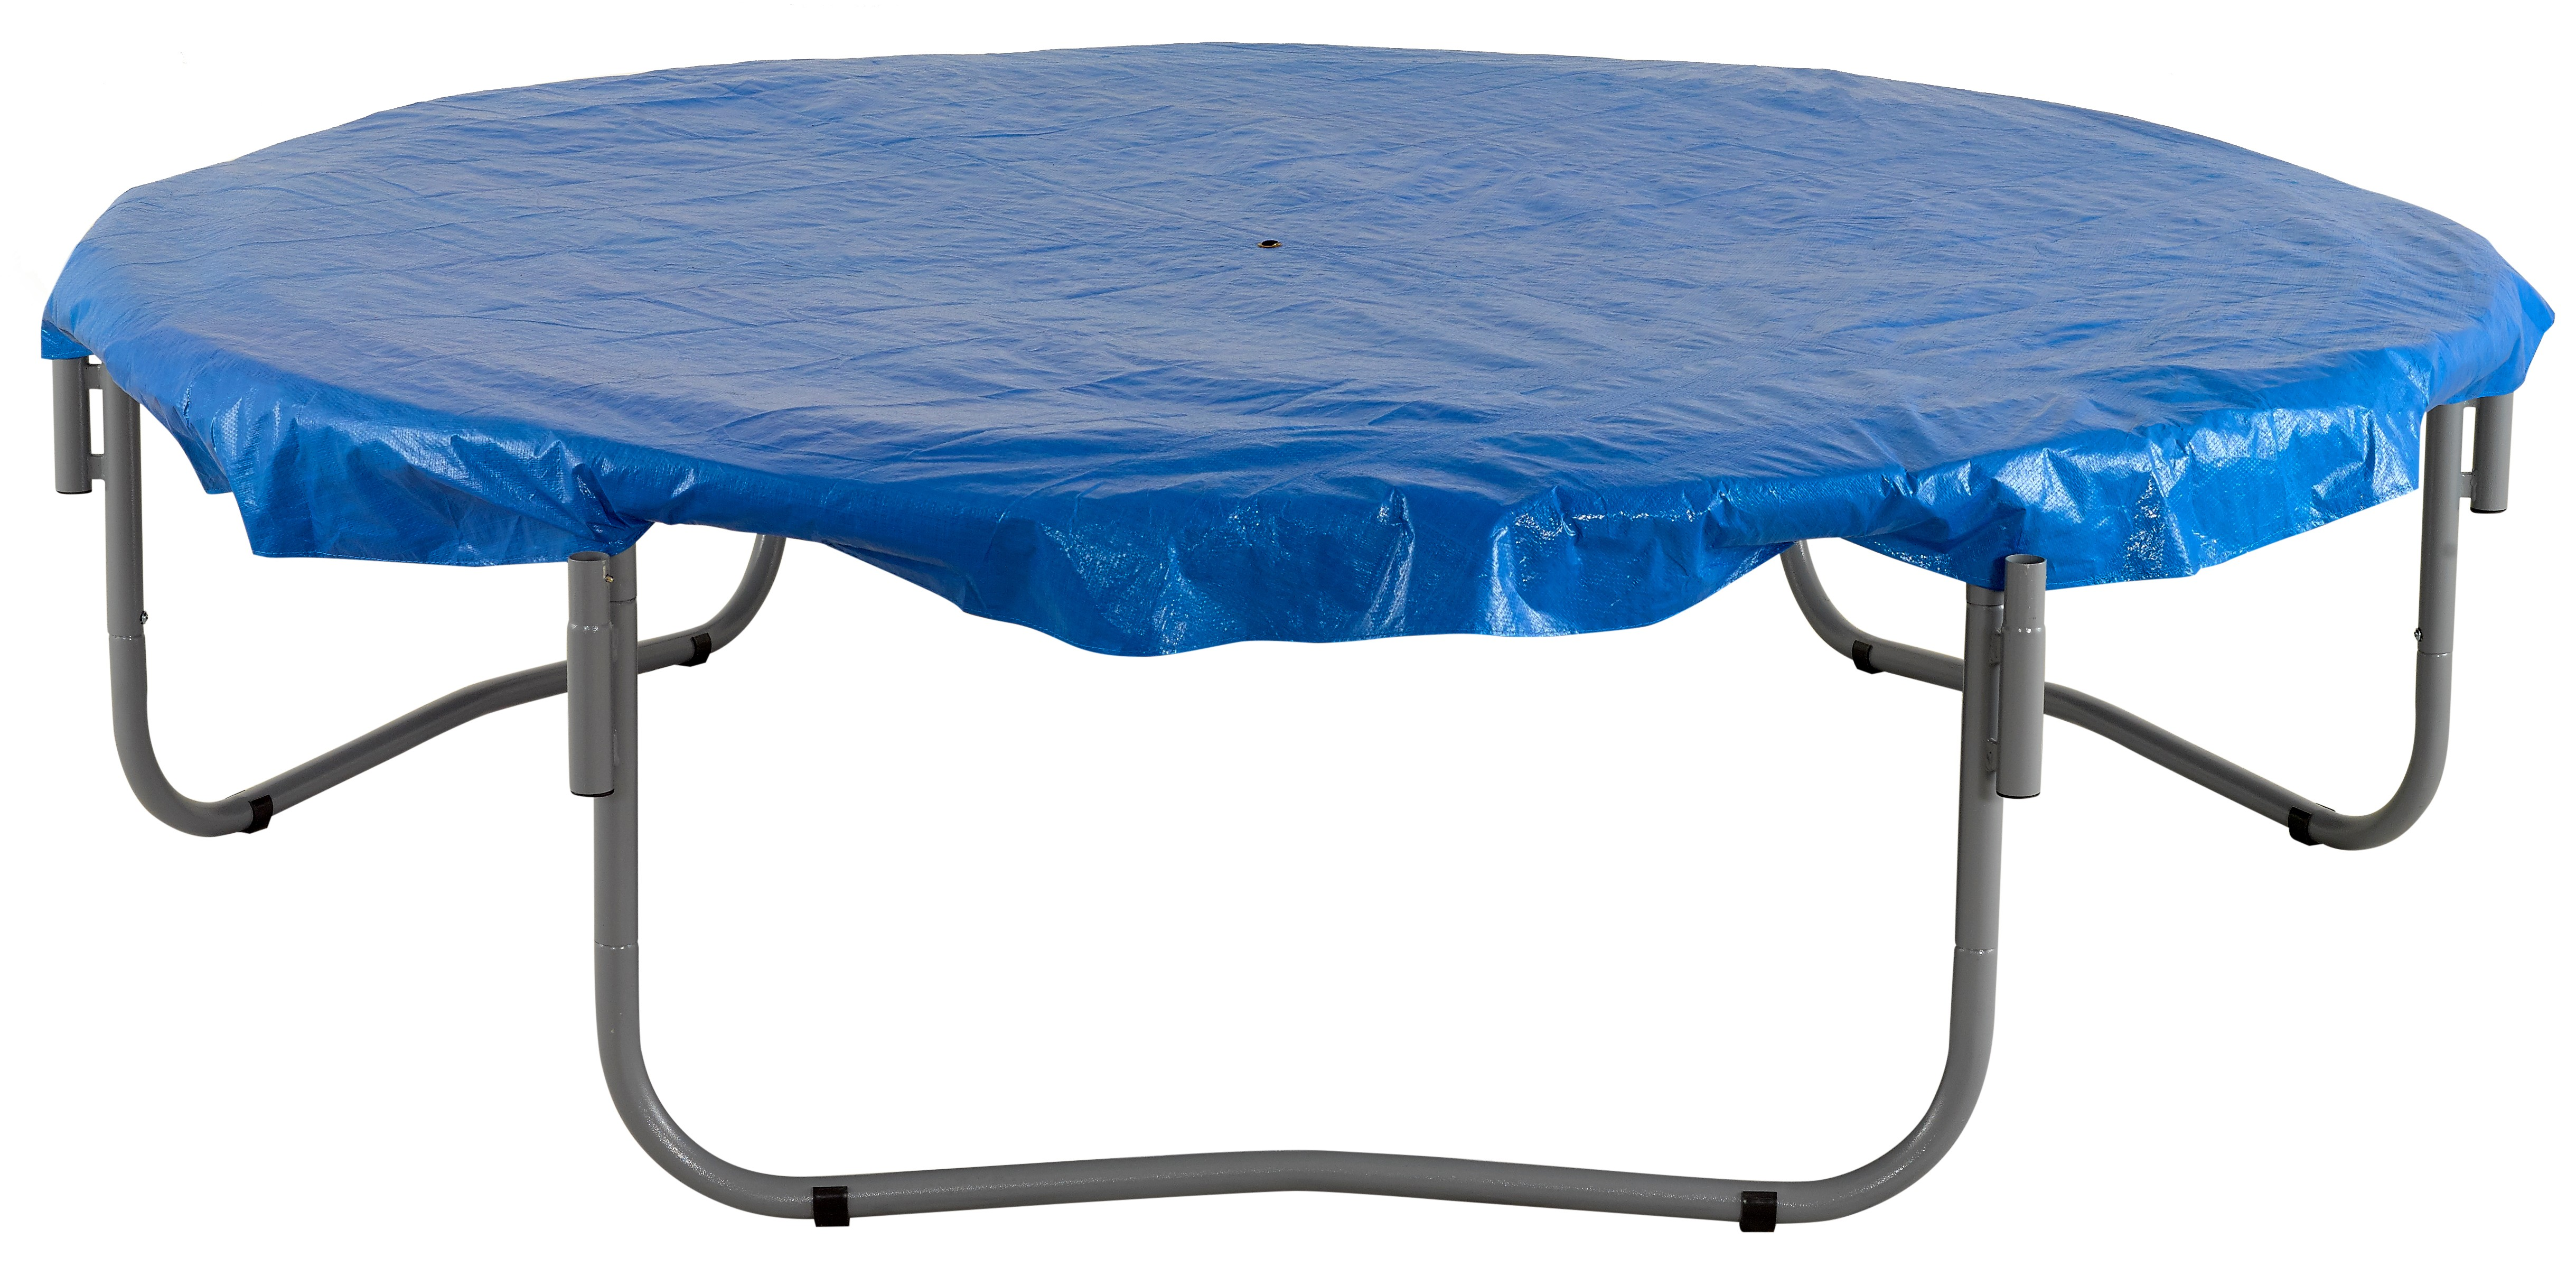 6ft Trampoline Cover - Waterproof and UV Cover for Weather, Wind, Rain Protection of Round Trampolines - Blue